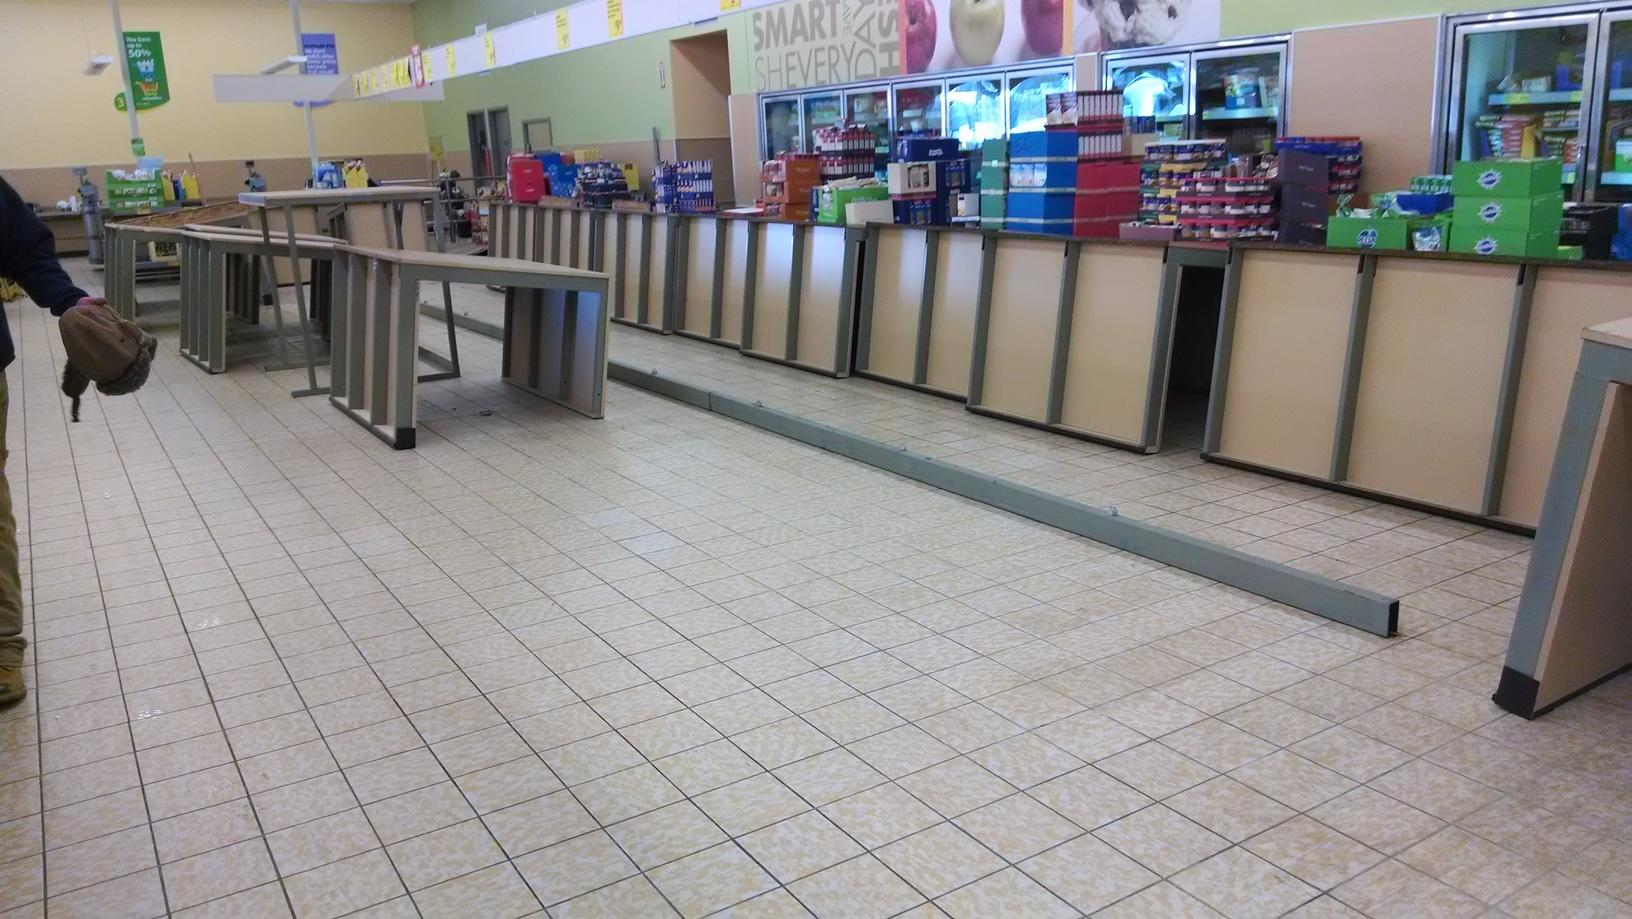 Aldi's Grocery Store Water Damage Emergency Service - After Photo